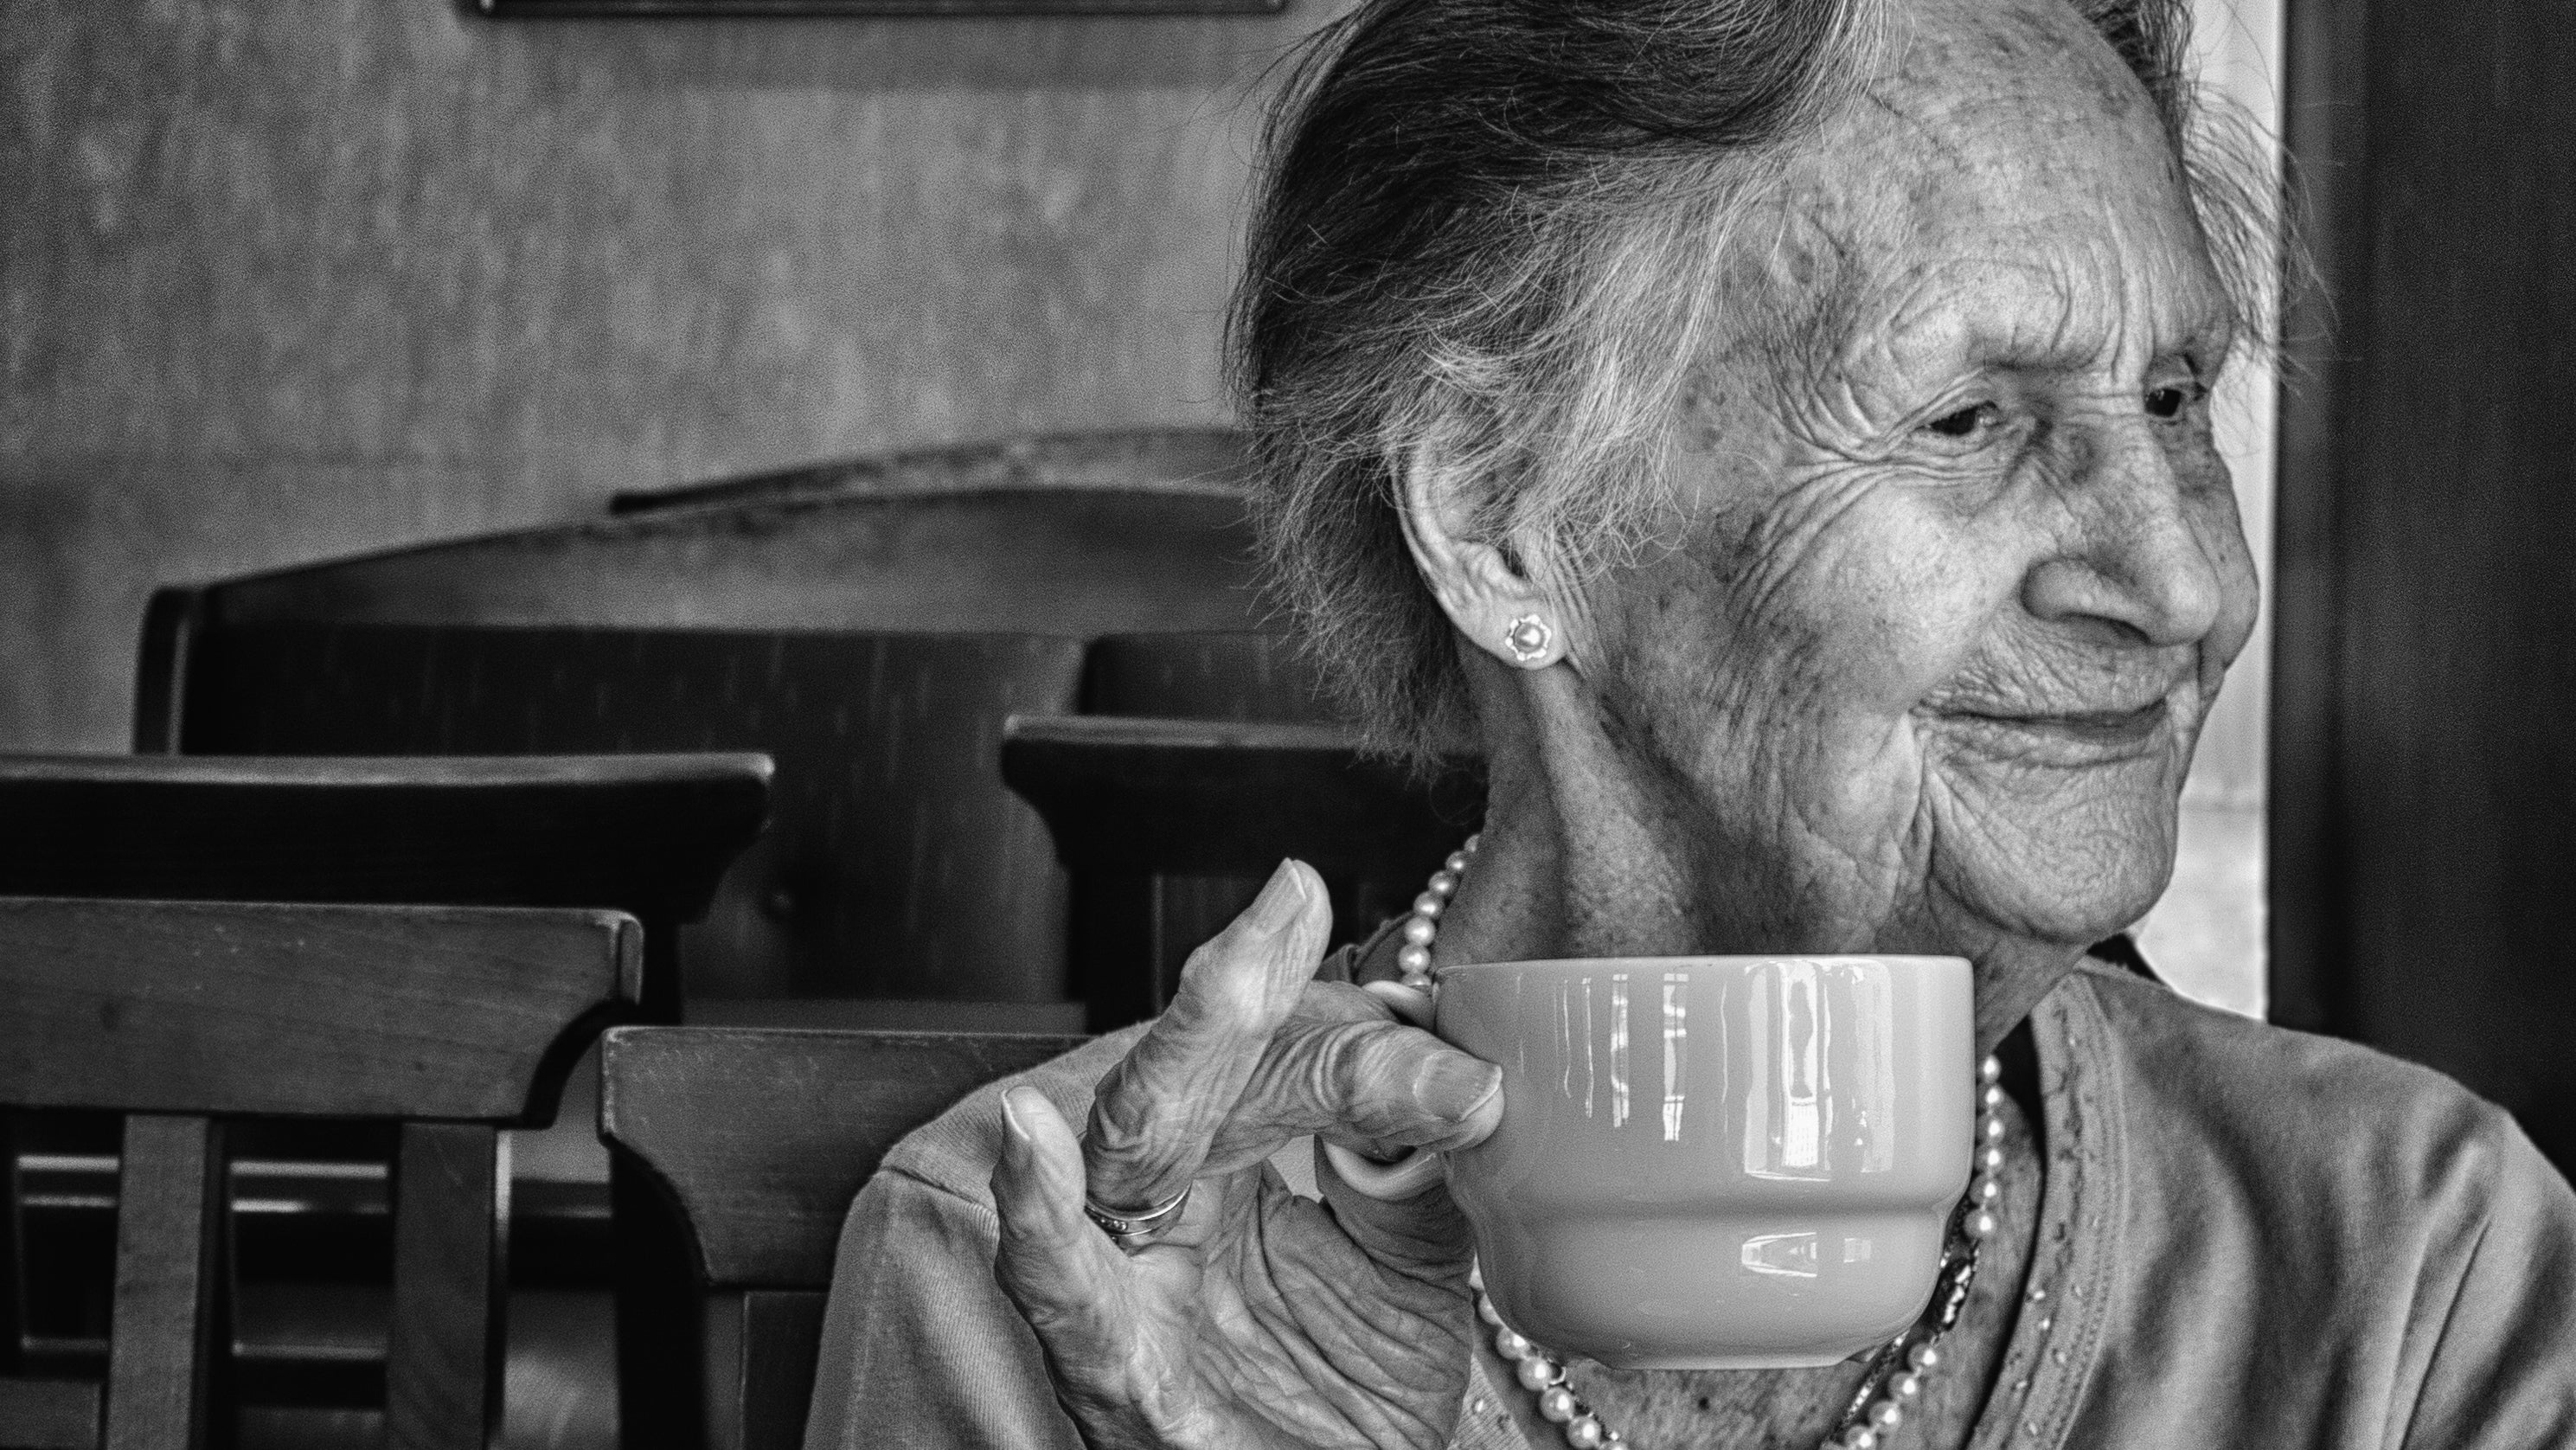 Does Coffee Really Make You Live Longer?